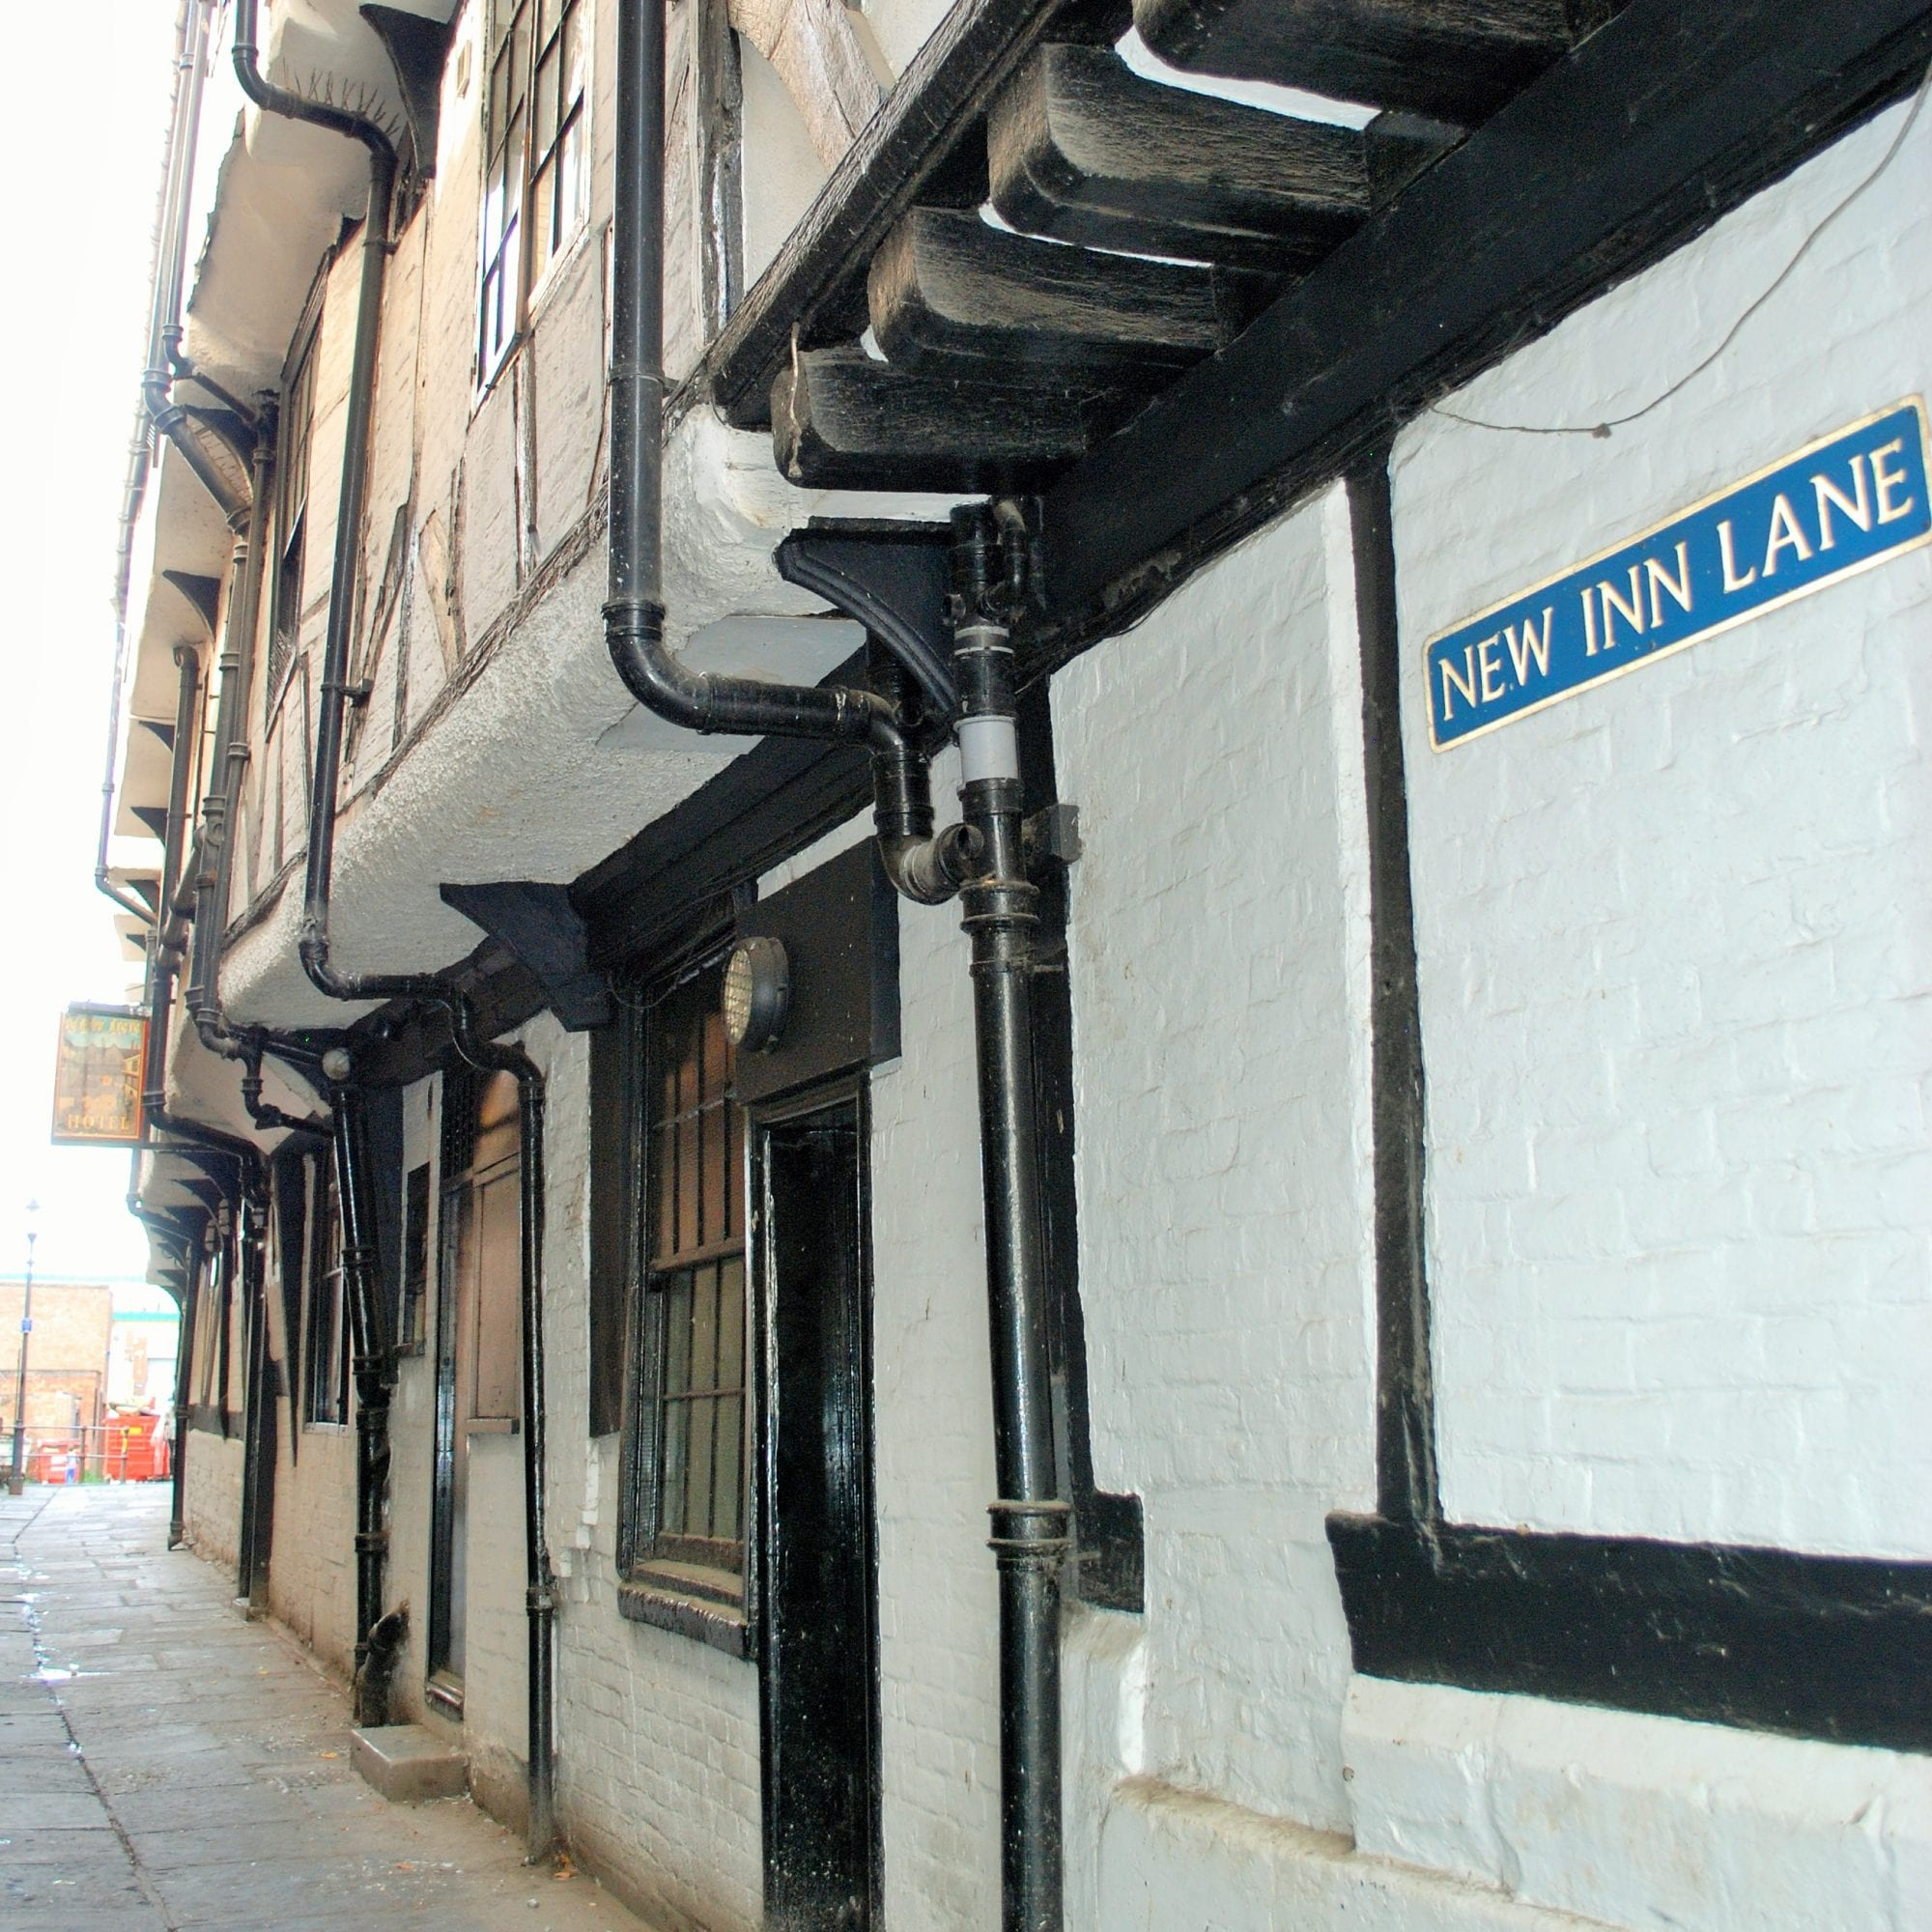 new inn best example of a galleried medieval inn in england built 1450s